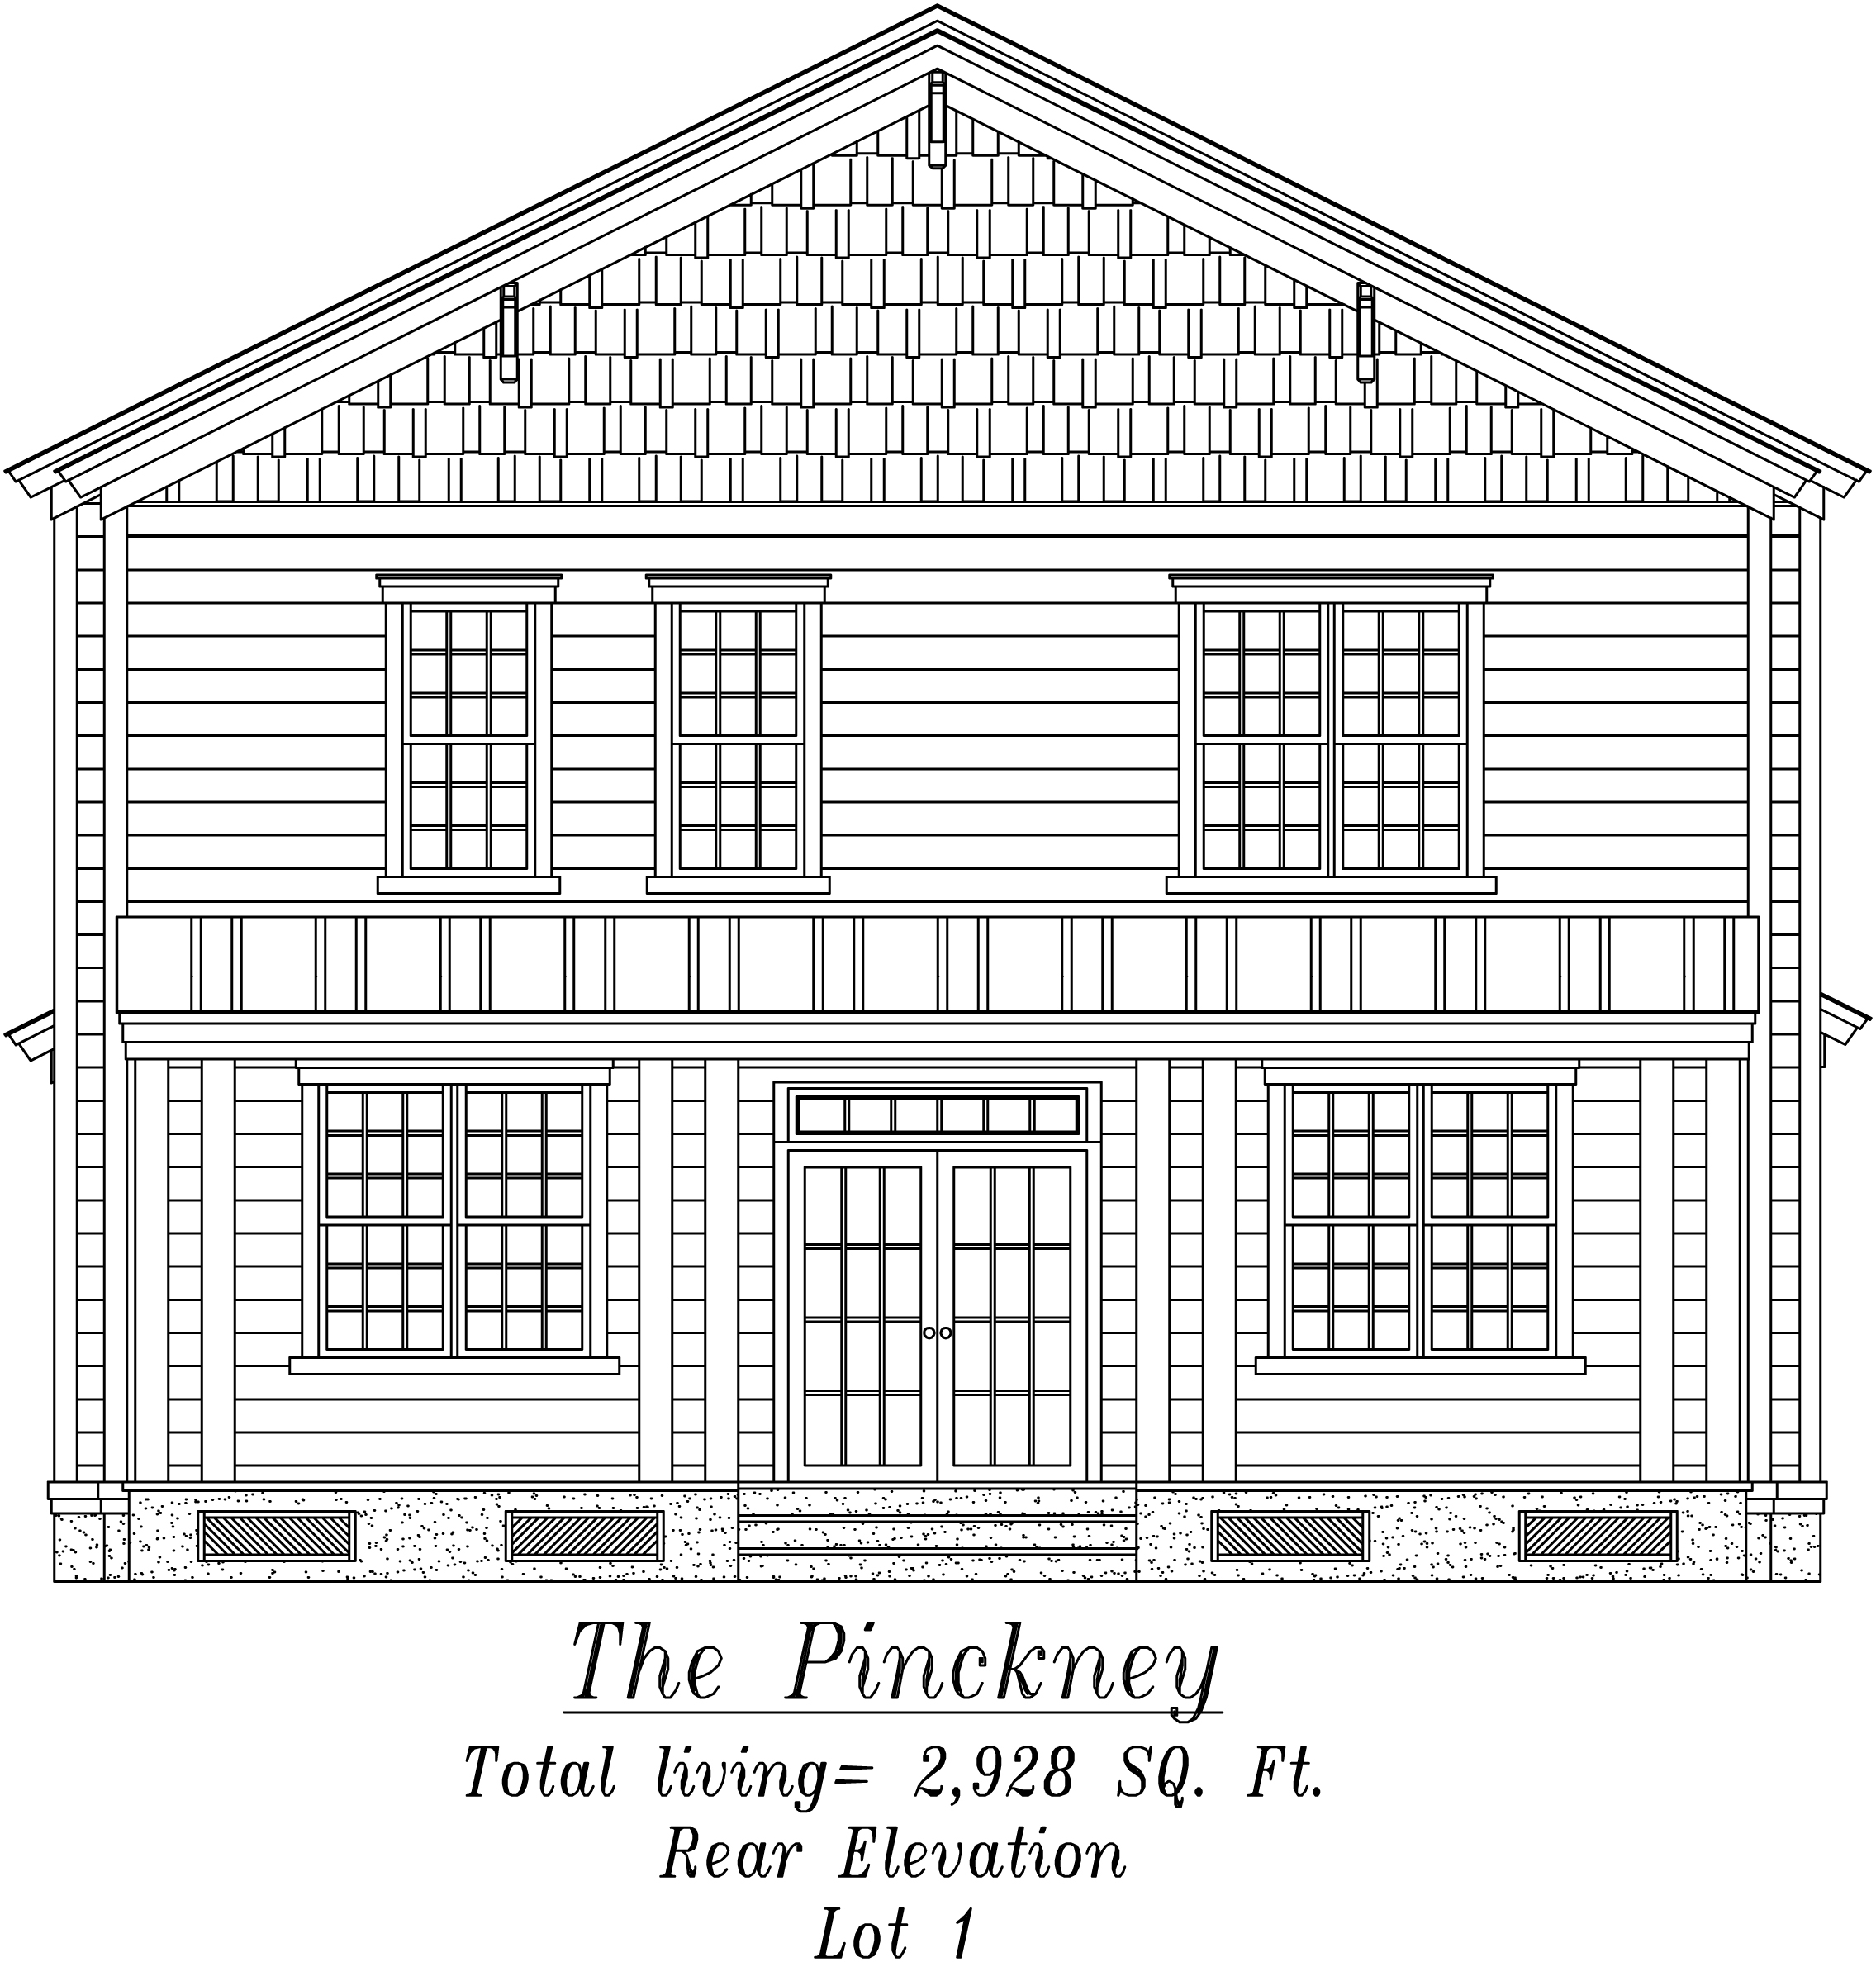 Pinckney Front Elevation